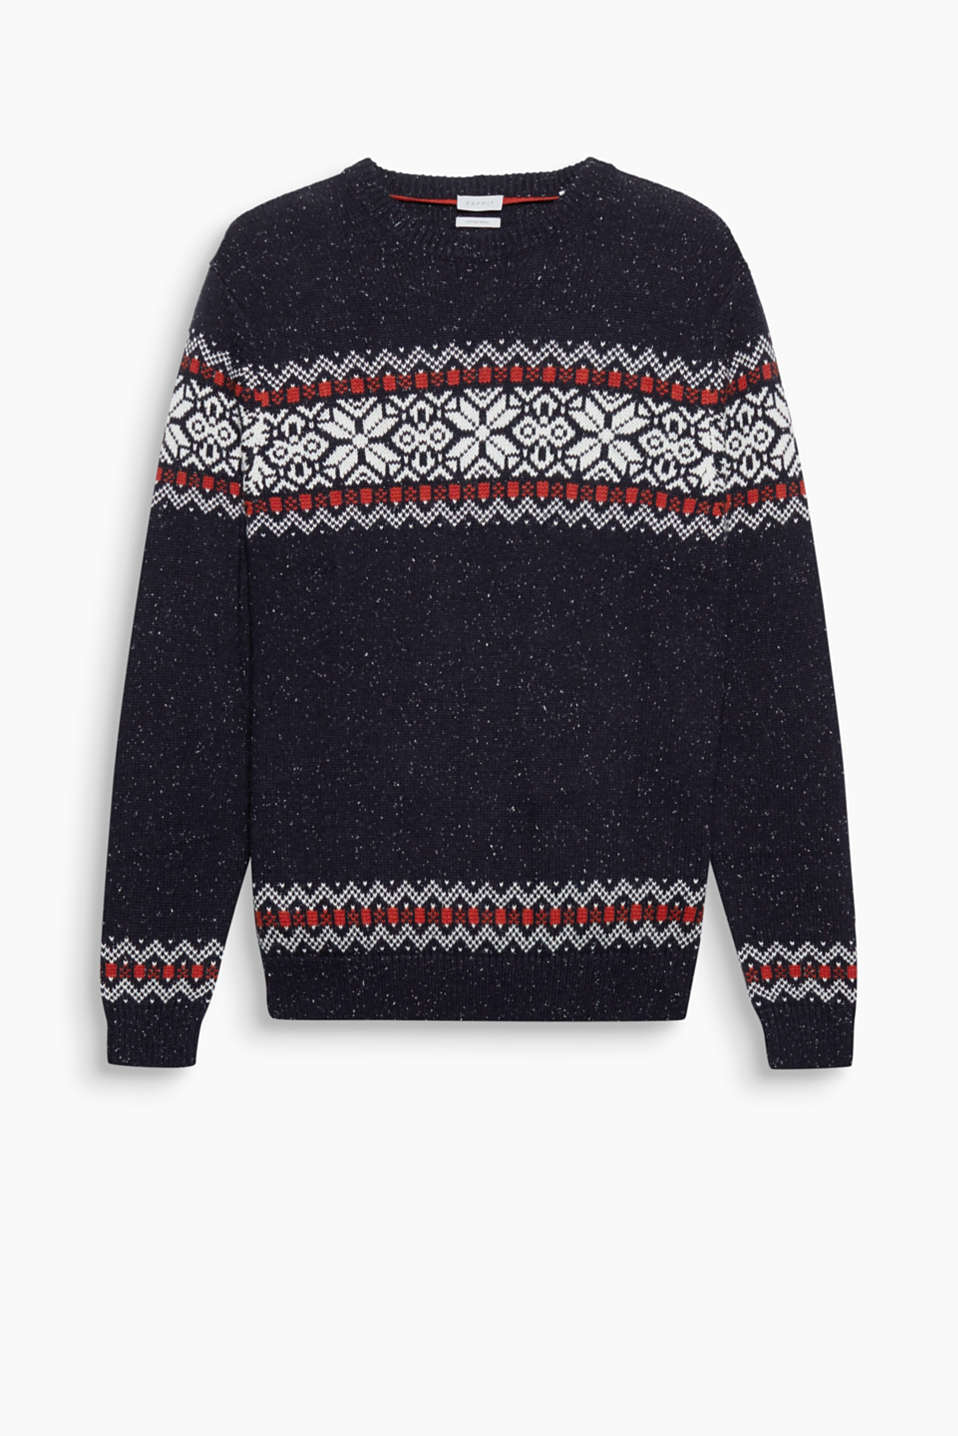 We love casual knitwear! The two-tone intarsia pattern makes this knitted jumper a favourite for the autumn.